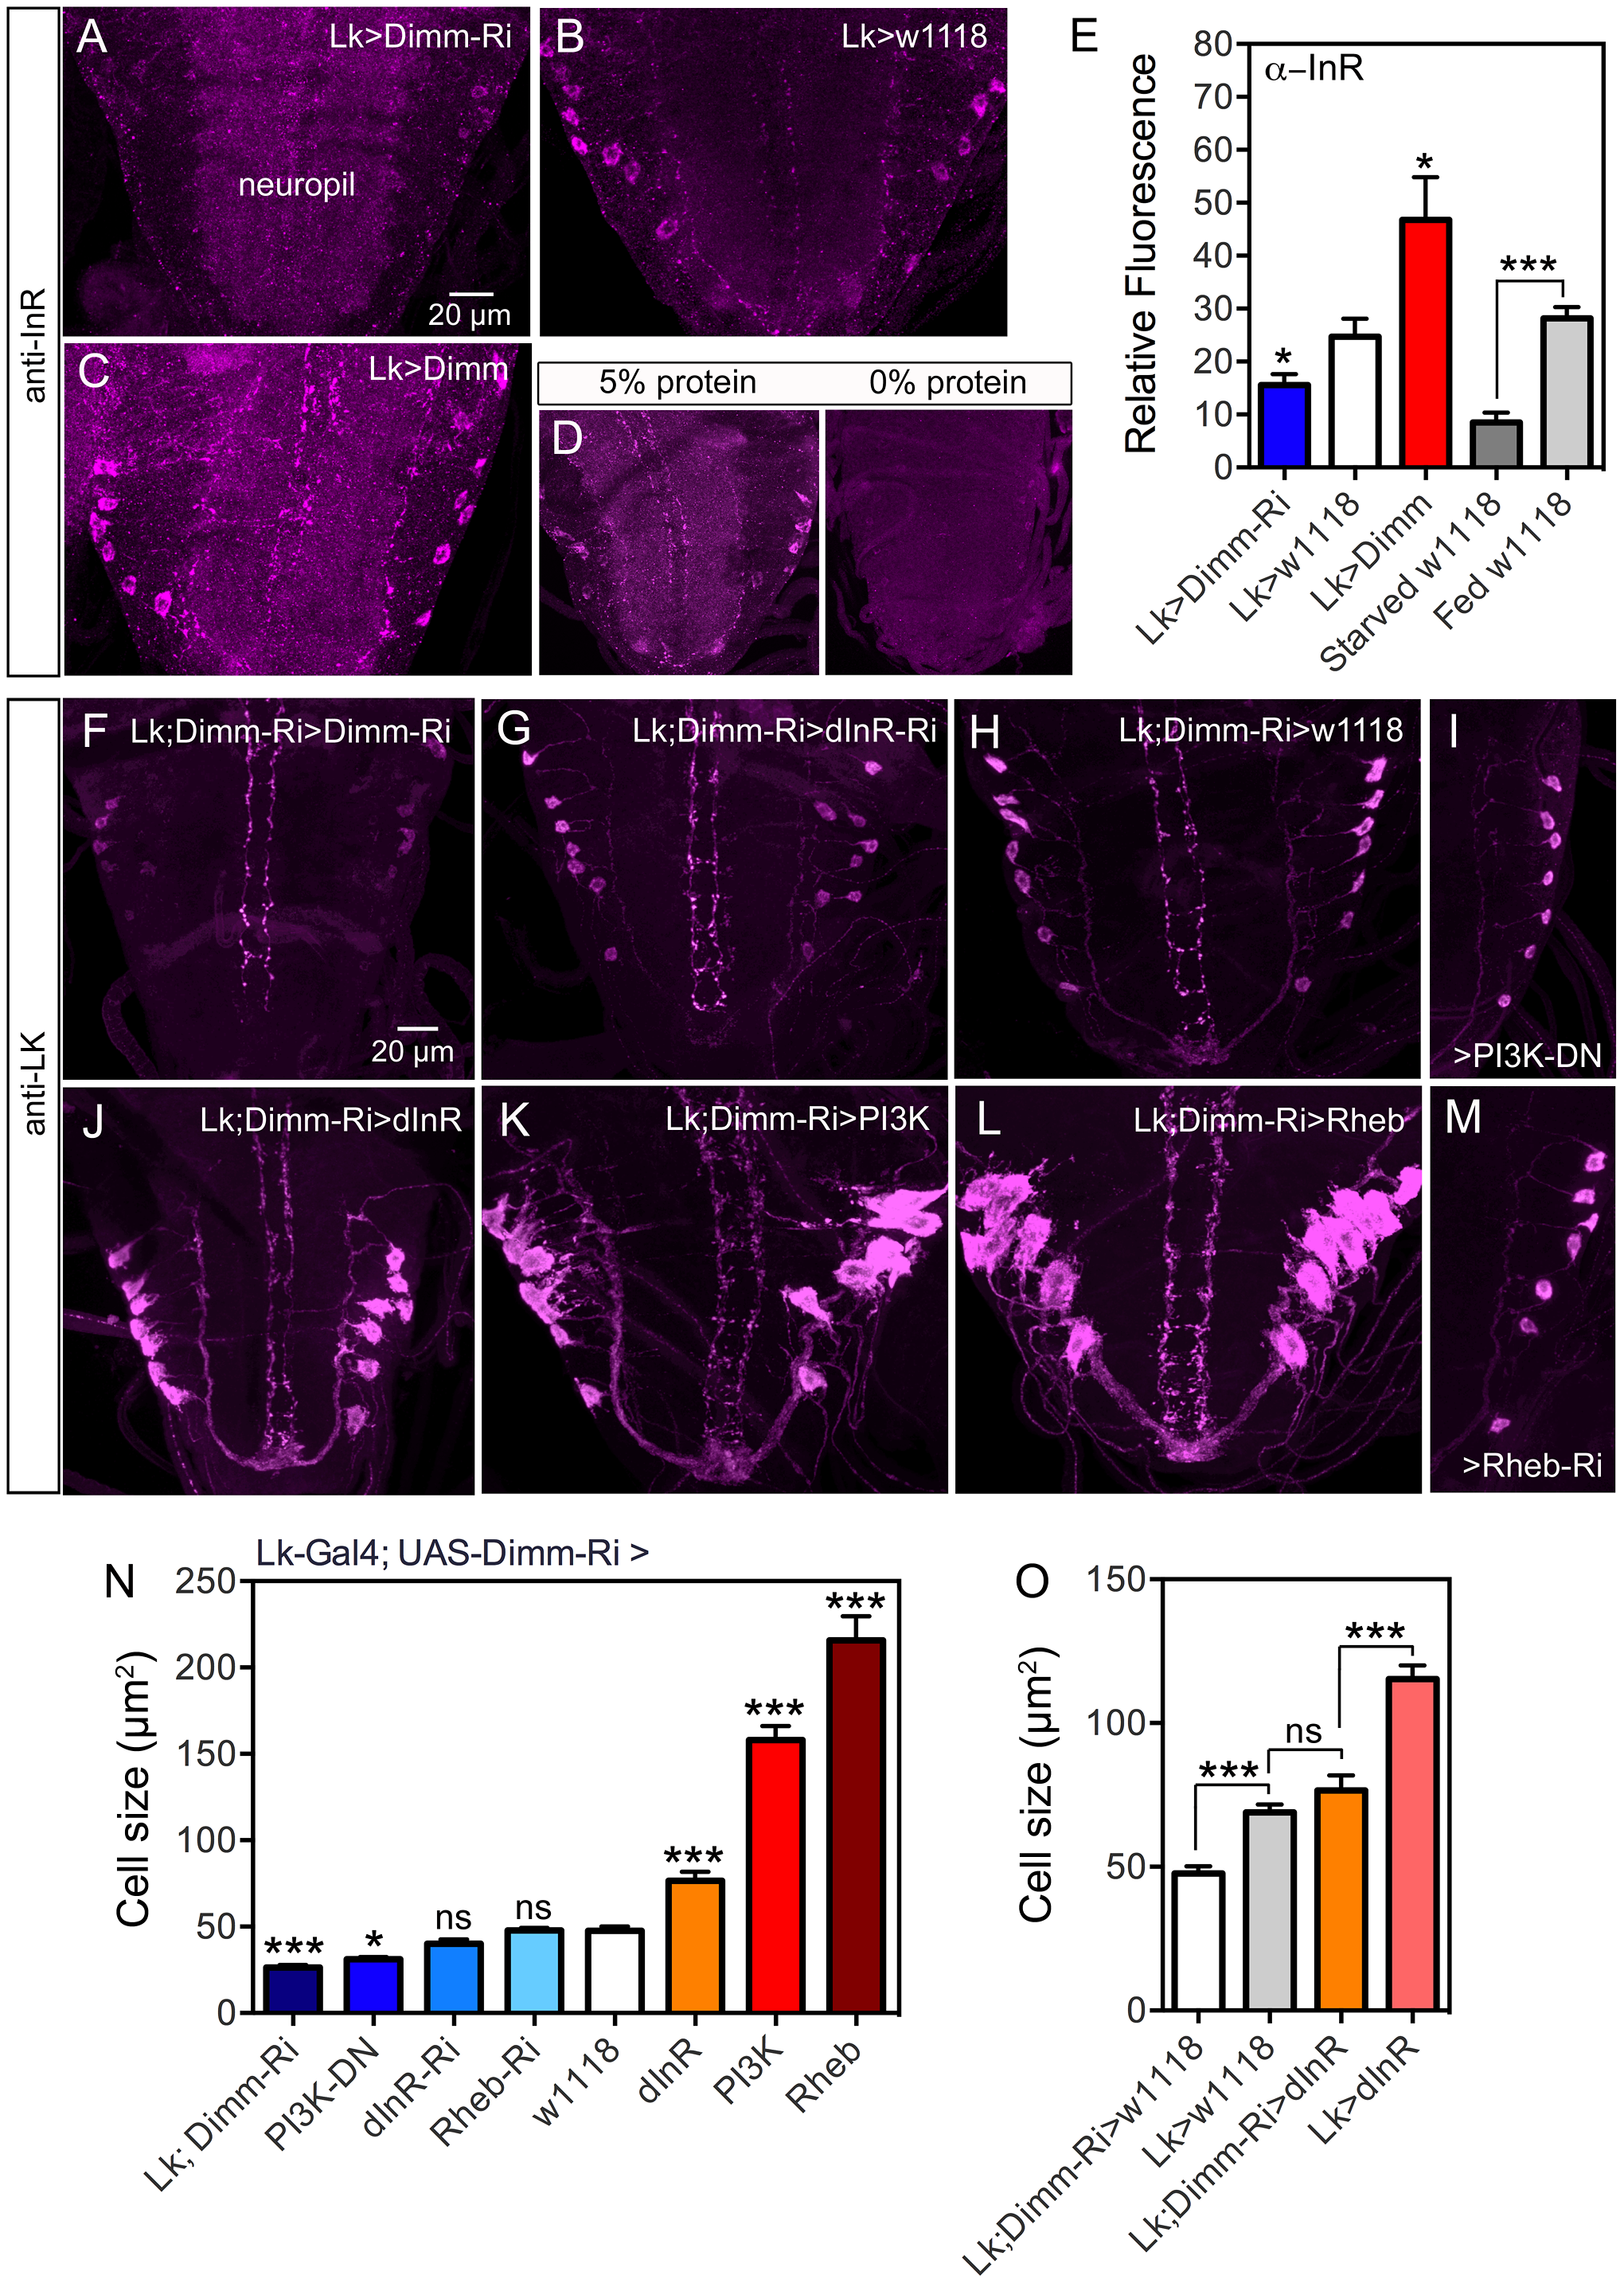 Knockdown of Dimm in ABLKs affects dInR expression and cell size regulation.